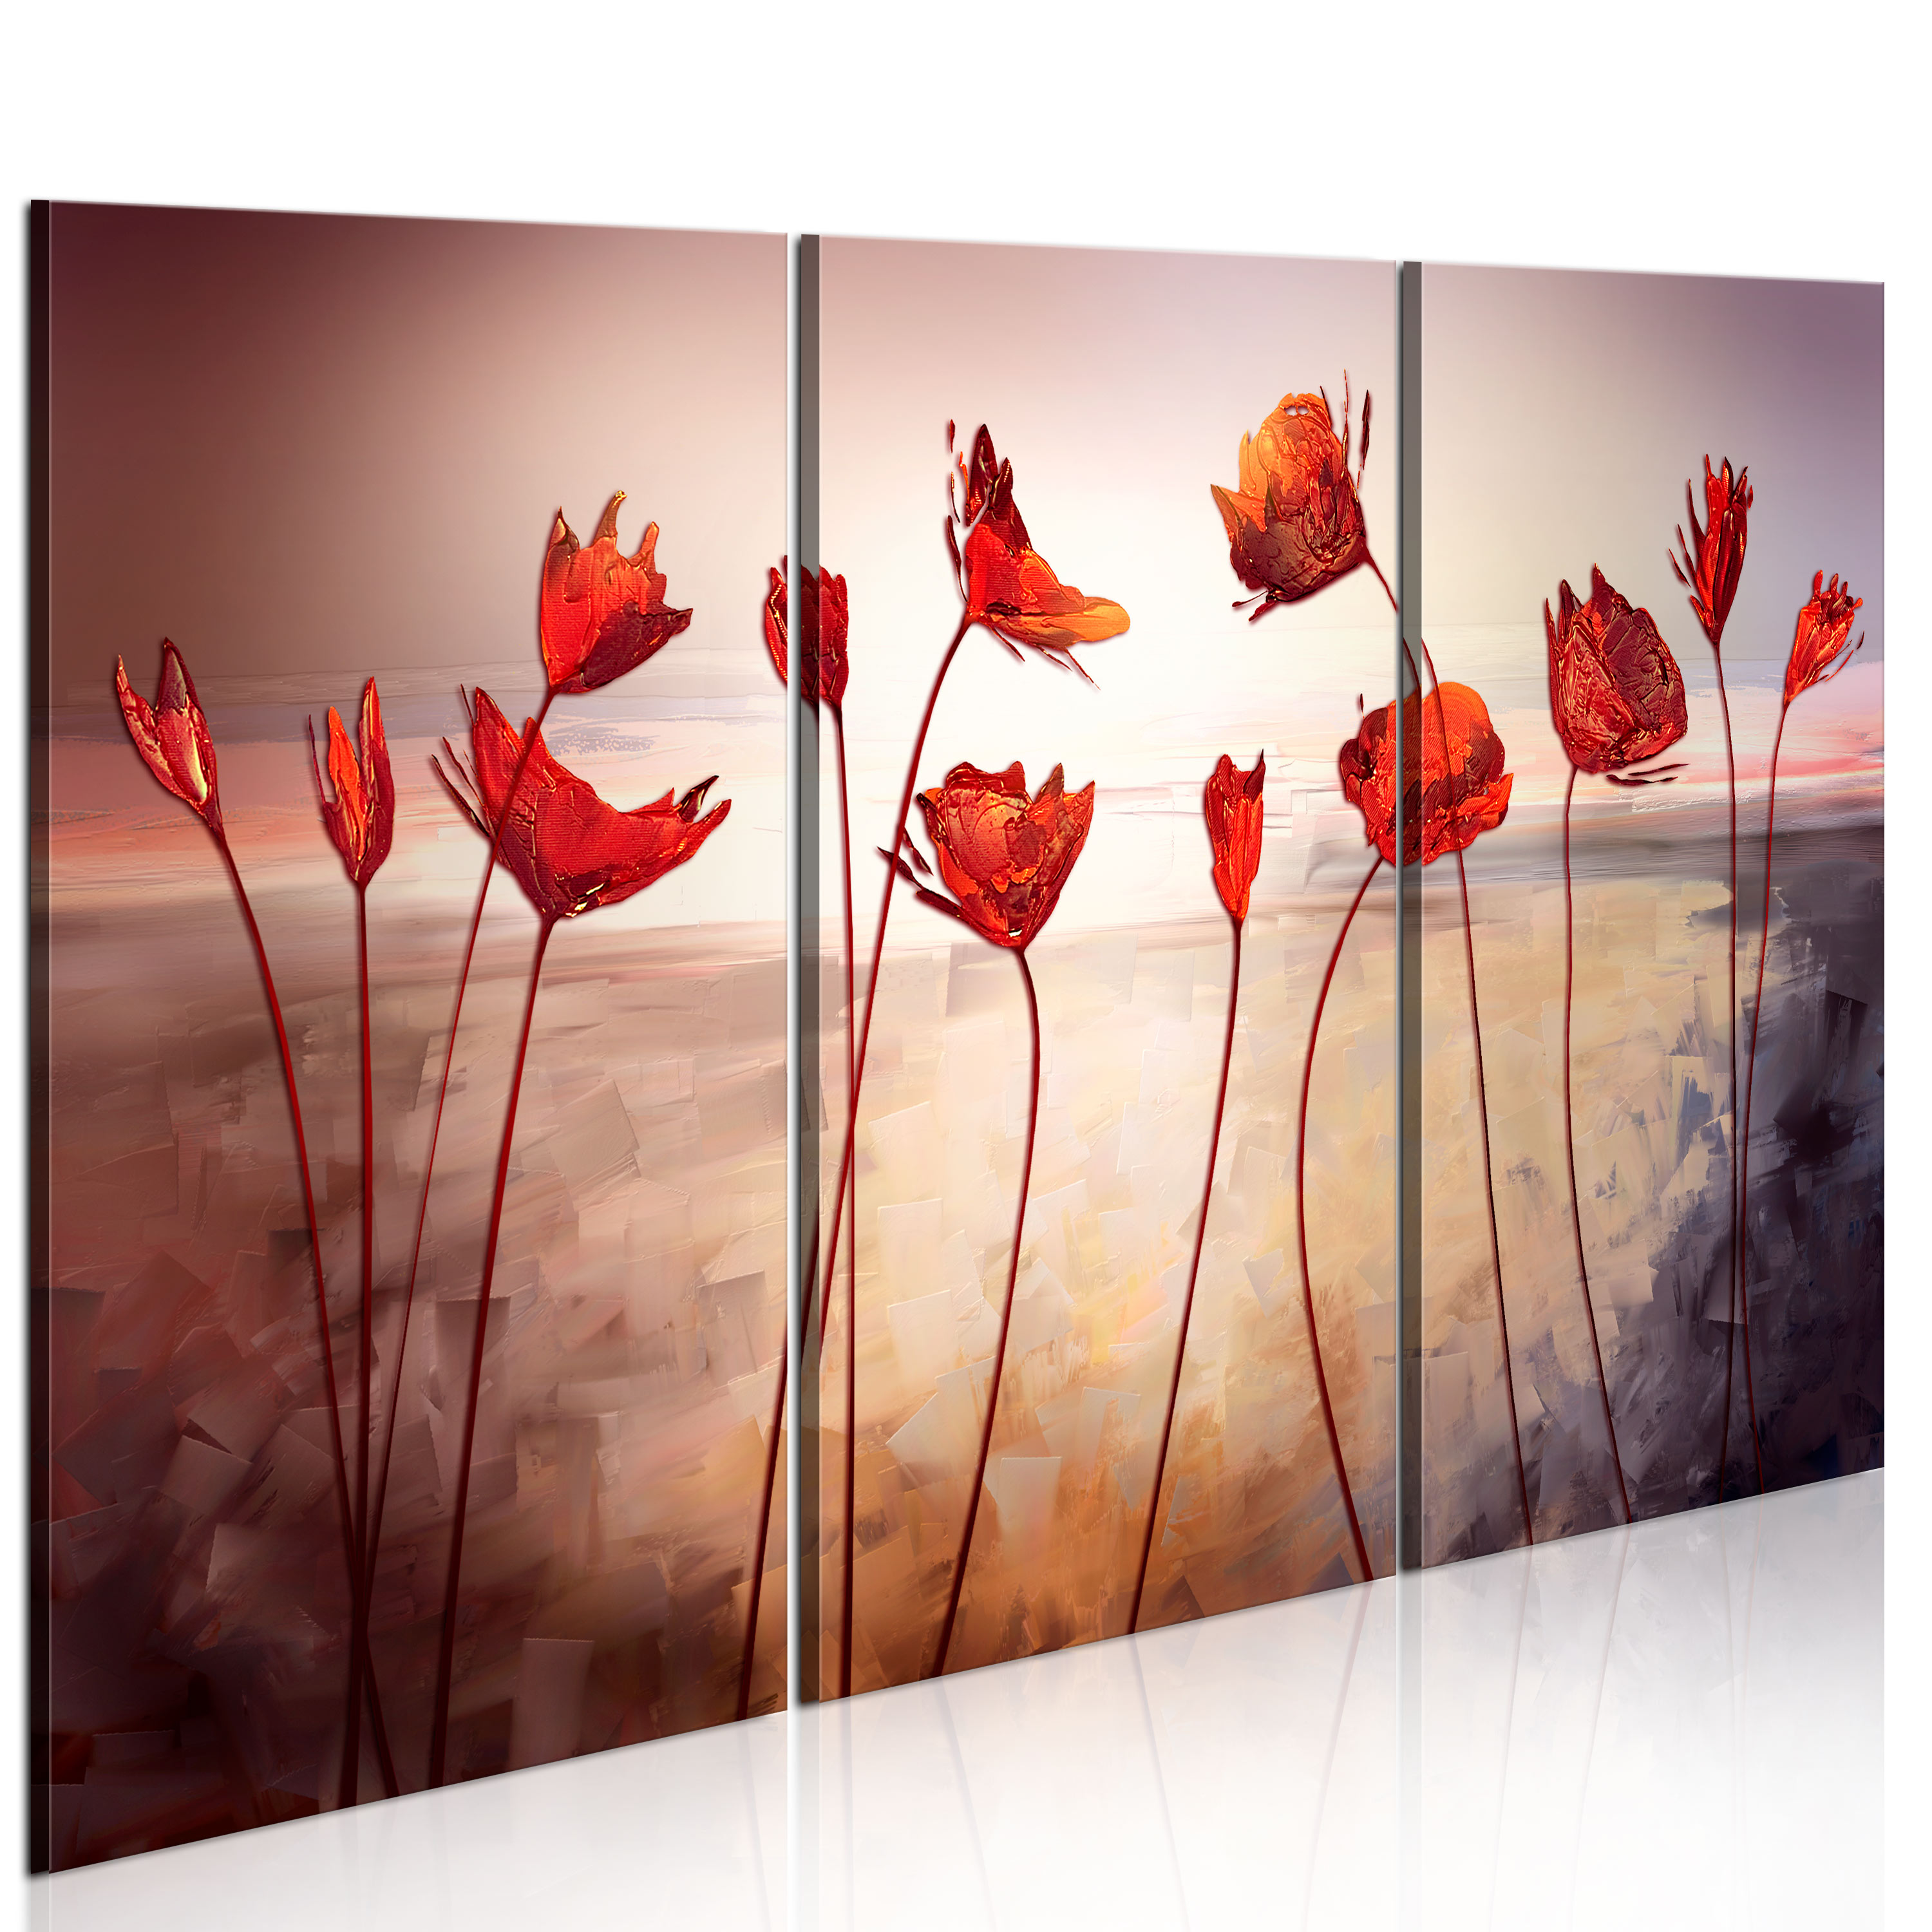 Tableau - Bright red poppies